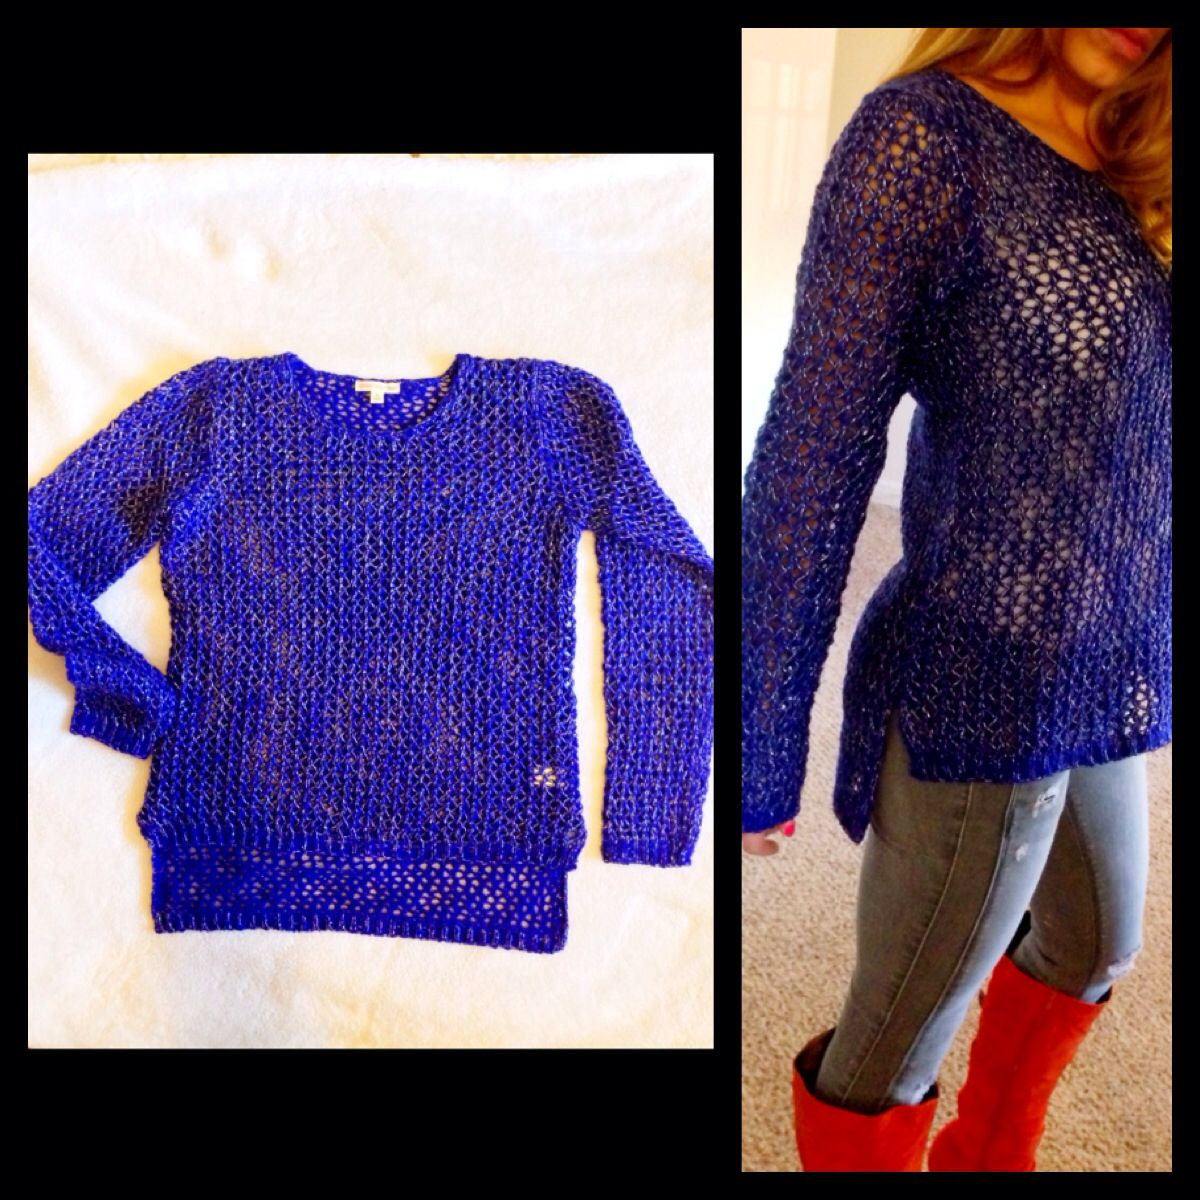 Royal blue sweater with silver metallic yarn $26 www.royceclothing ...